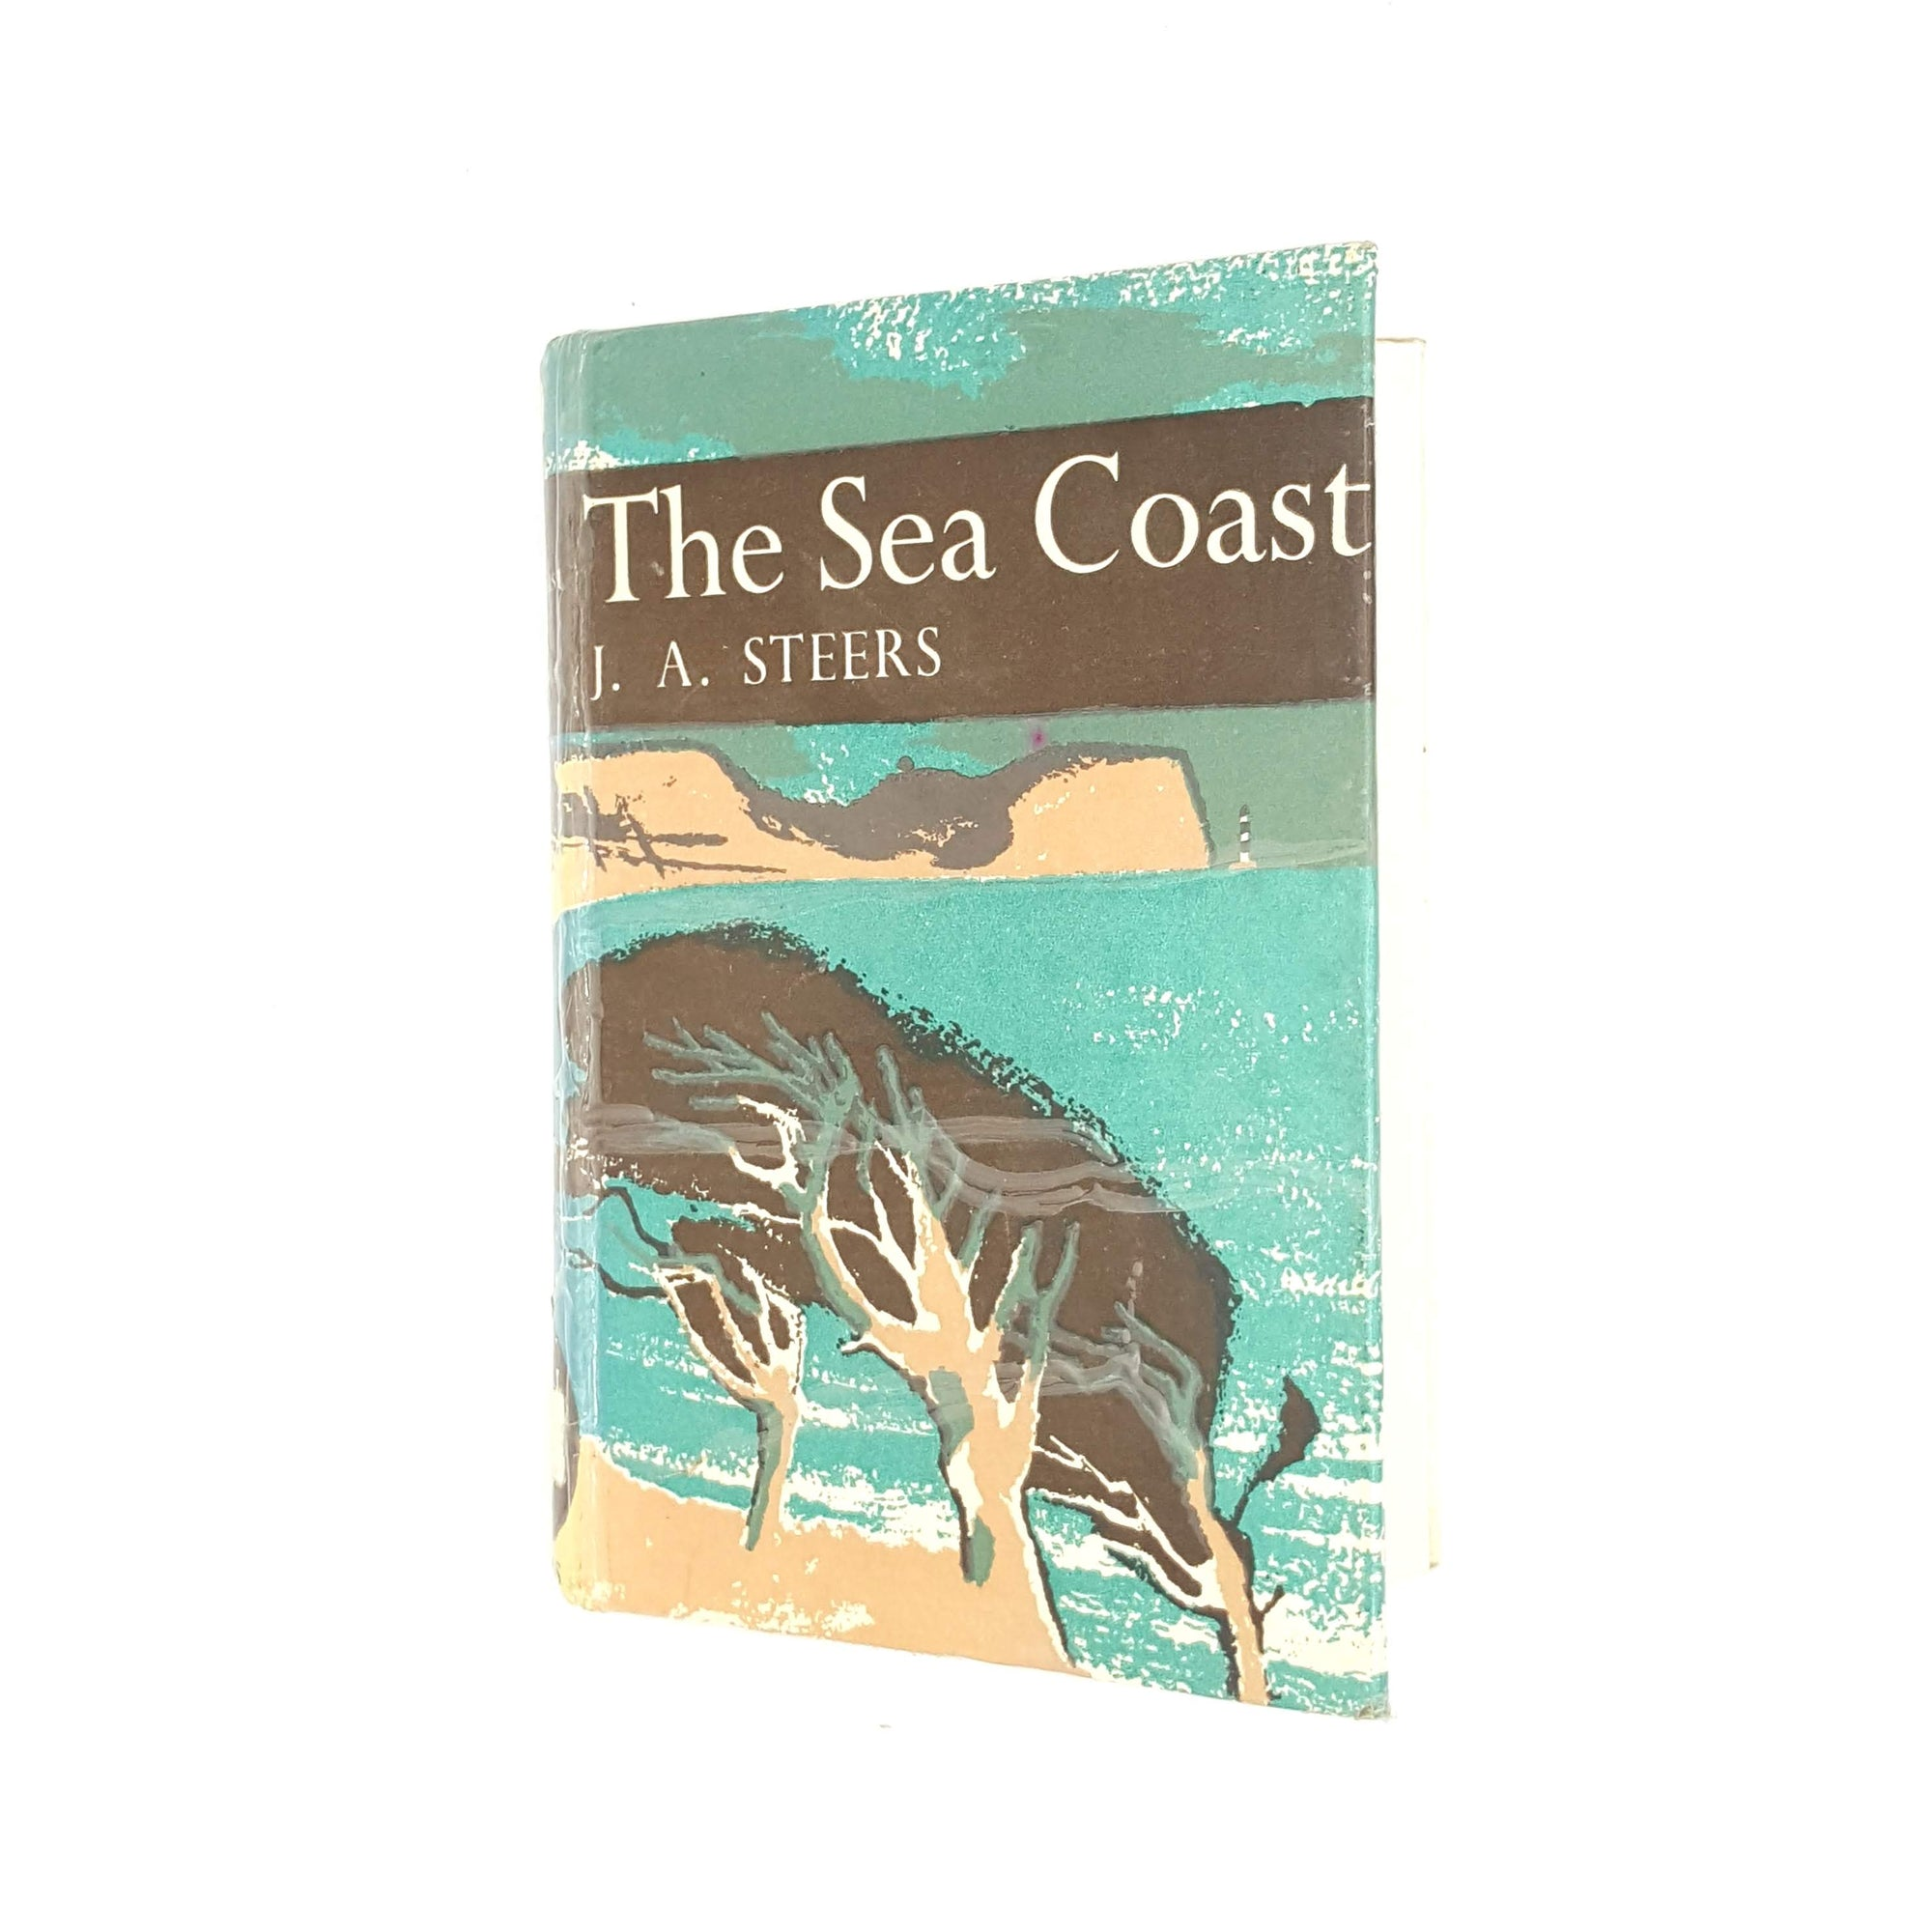 1972-country-house-library-patterned-classic-books-decorative-j-a-steers-the-sea-coast-antique-hardcover-collins-vintage-thrift-old-